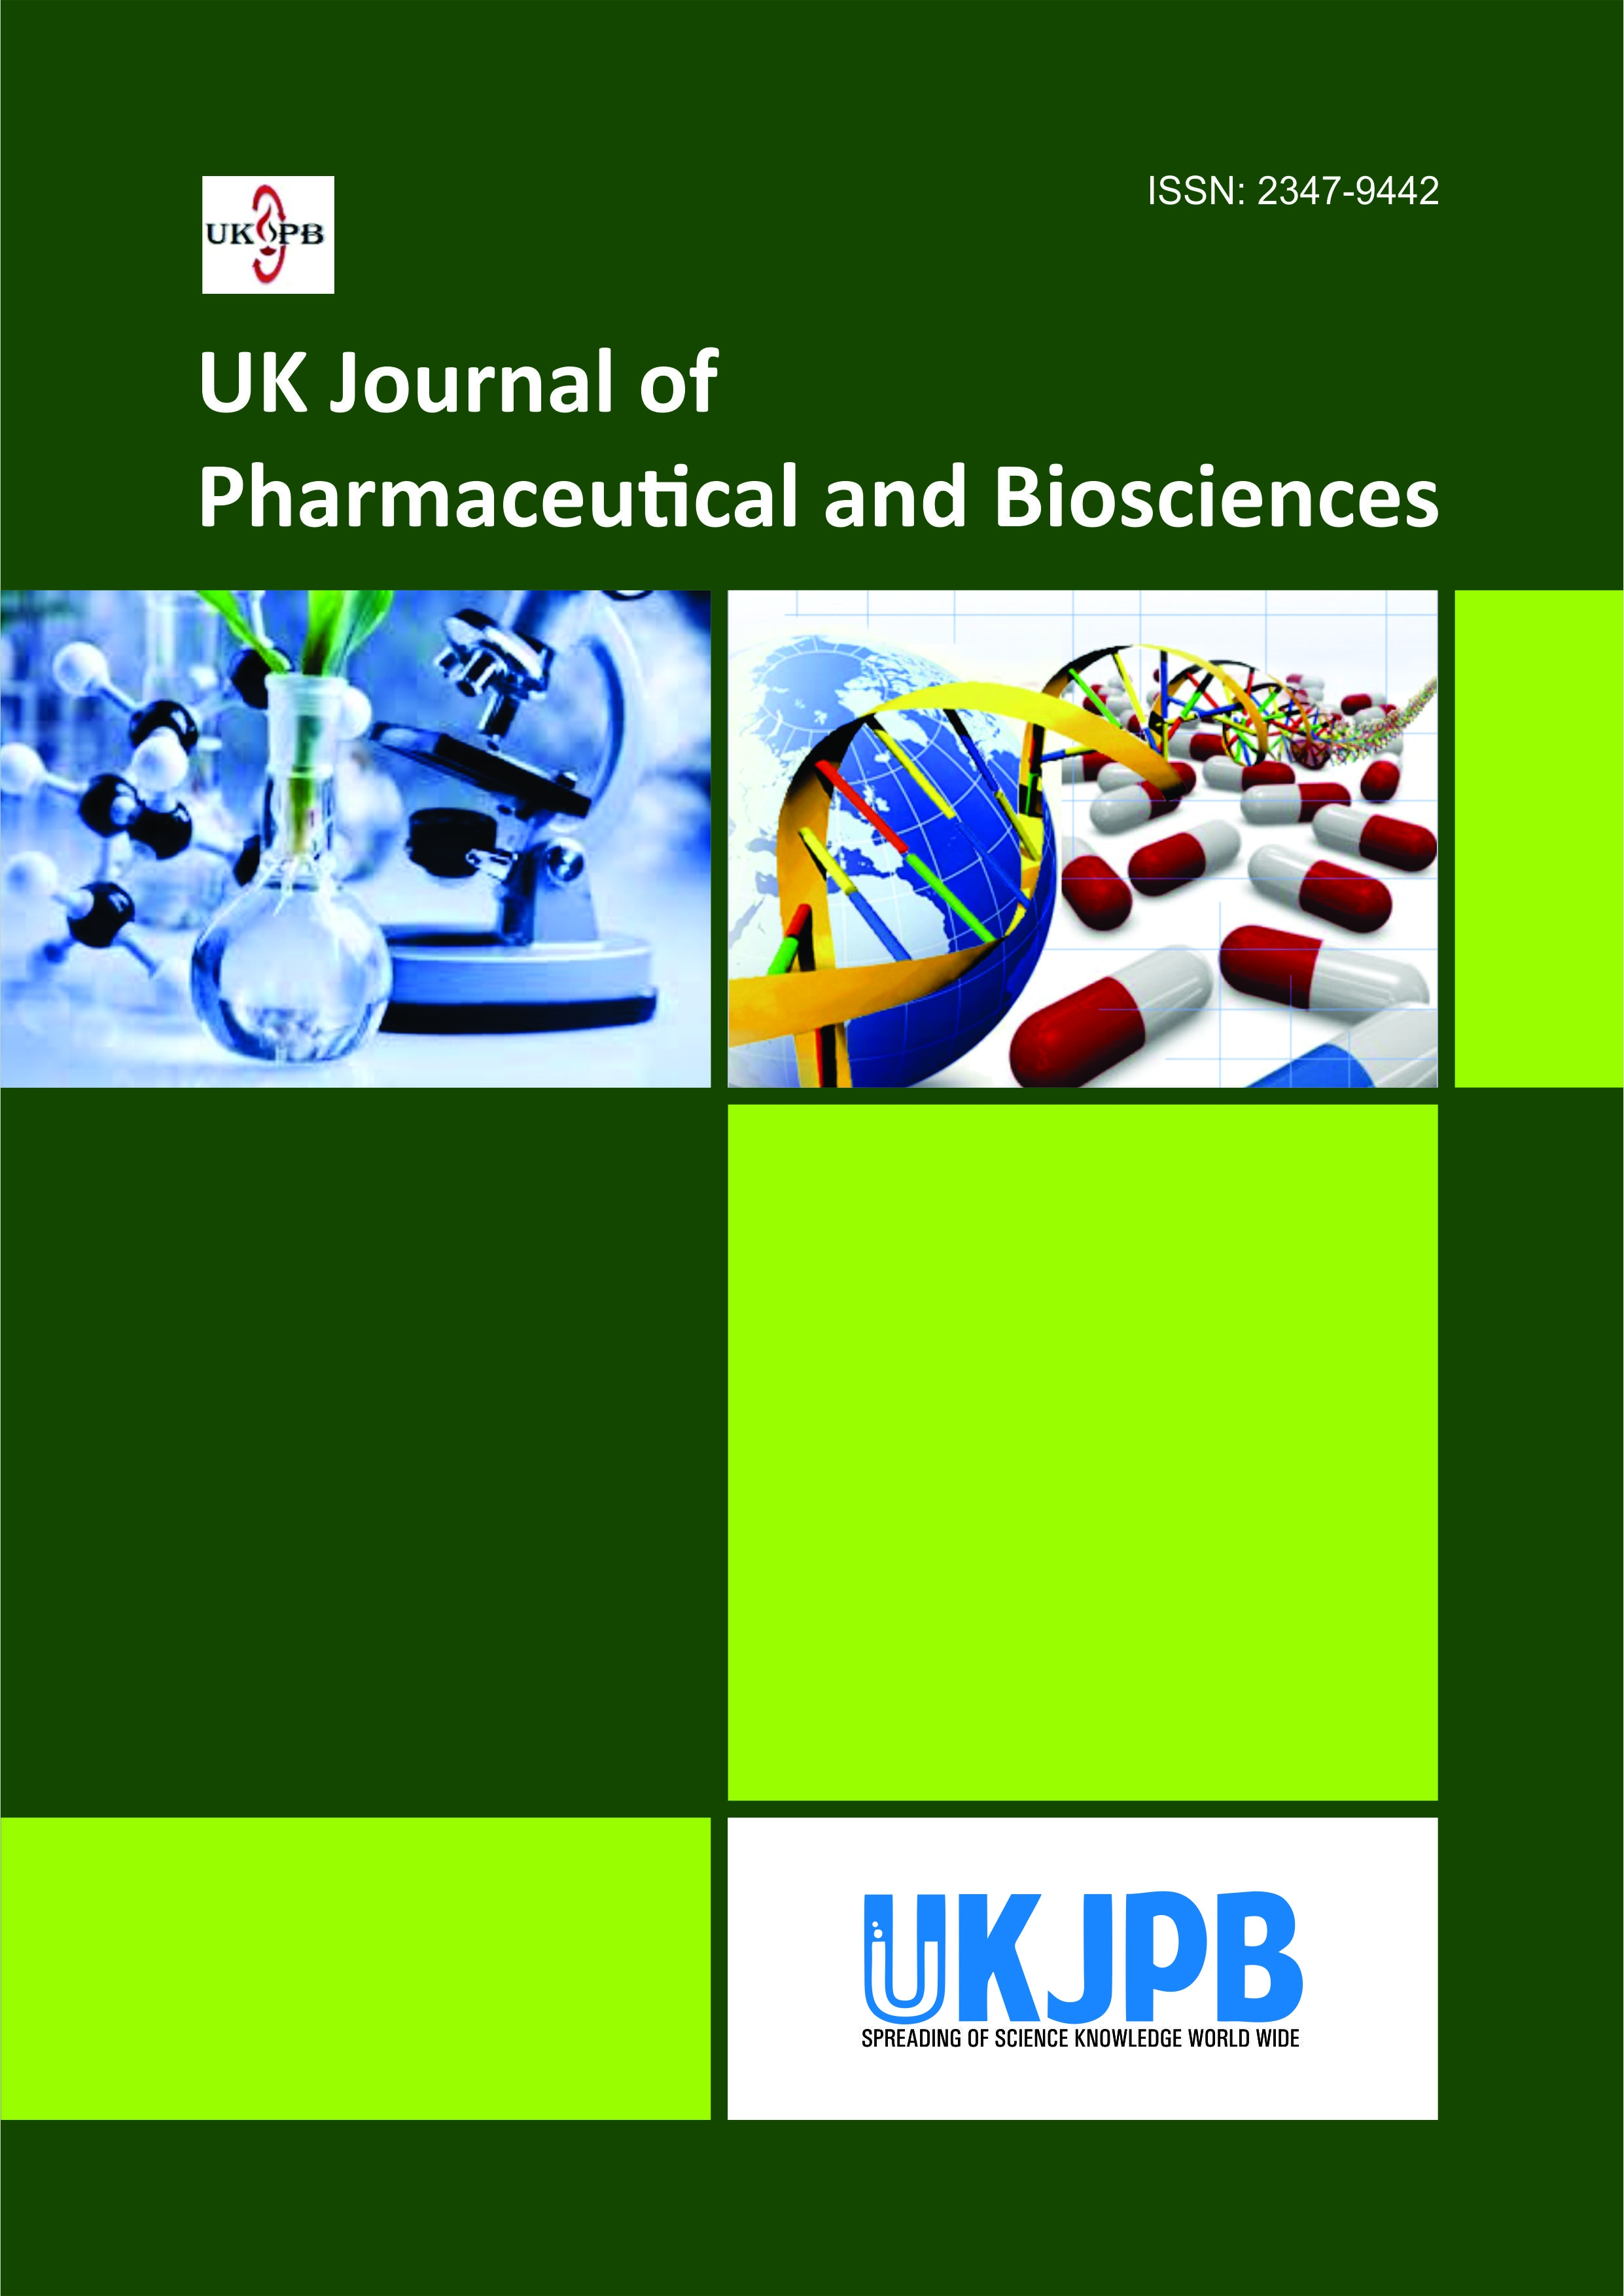 UK Journal of Pharmaceutical and Biosciences